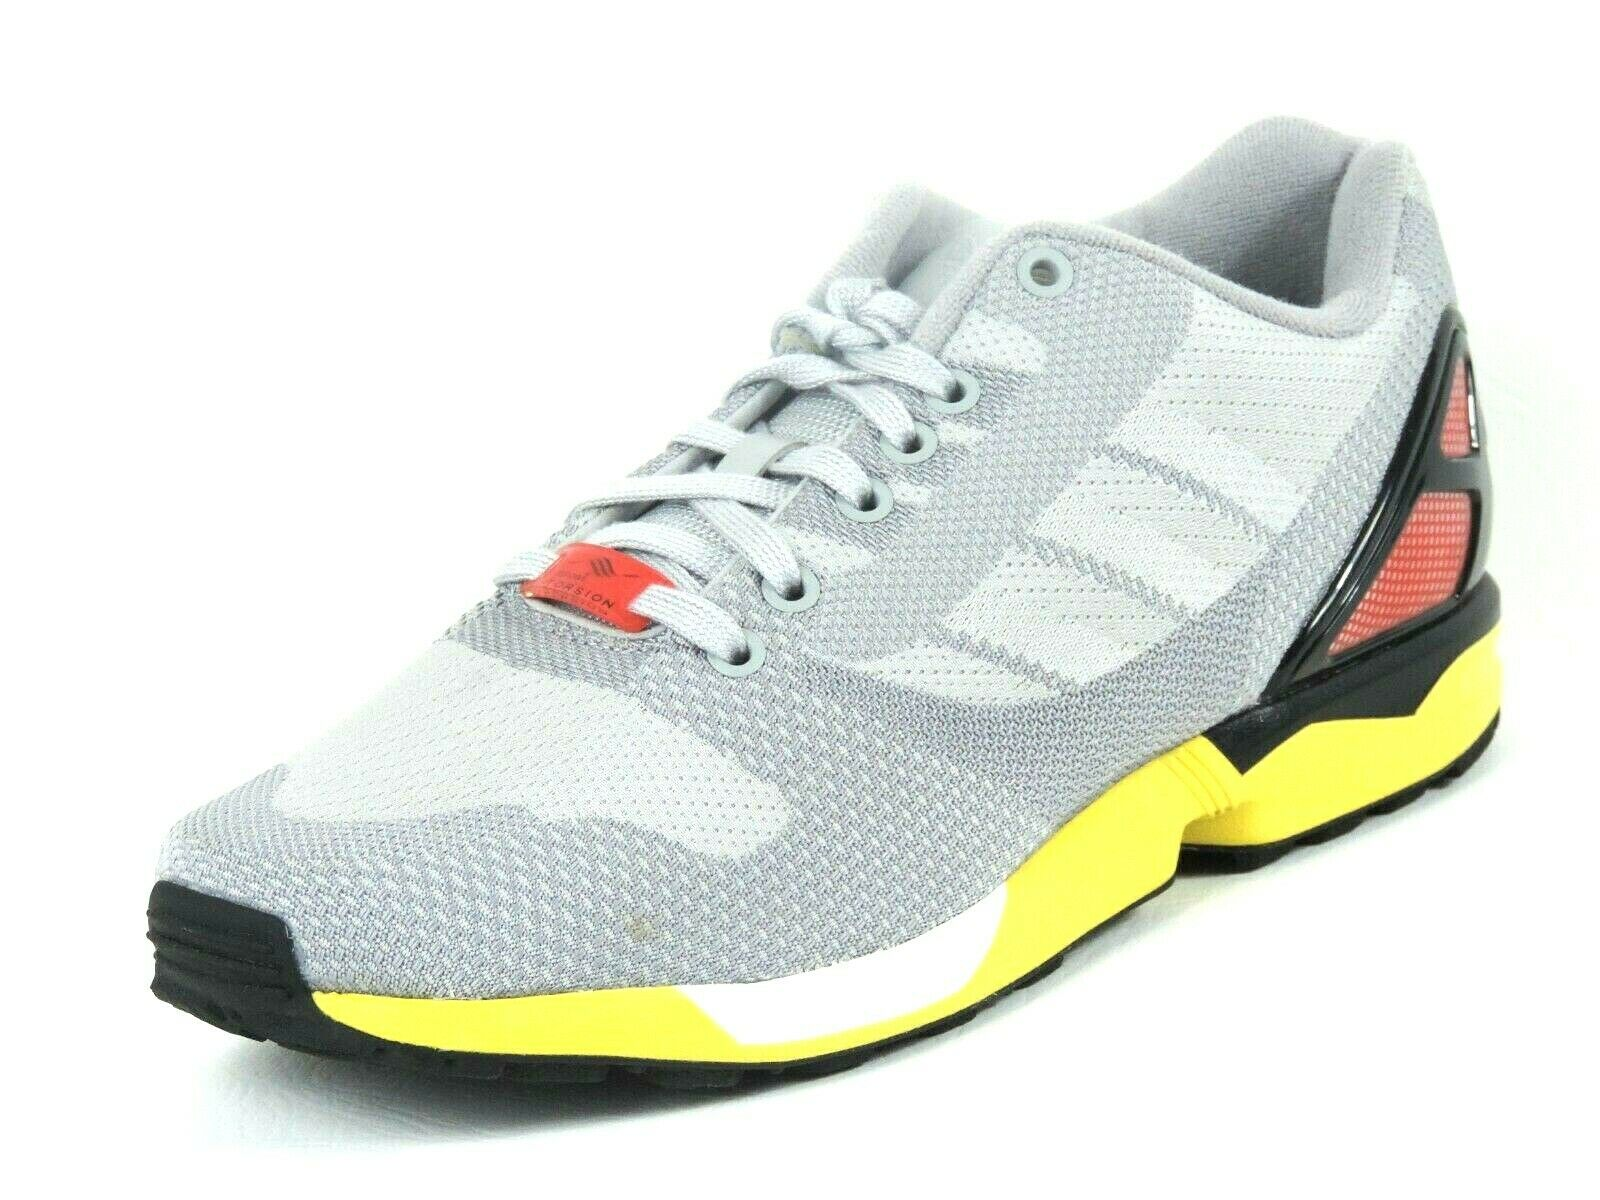 Adidas ZX FLUX WEAVE AF6346 Originals Running Mens Shoes Leather Grey Clonix